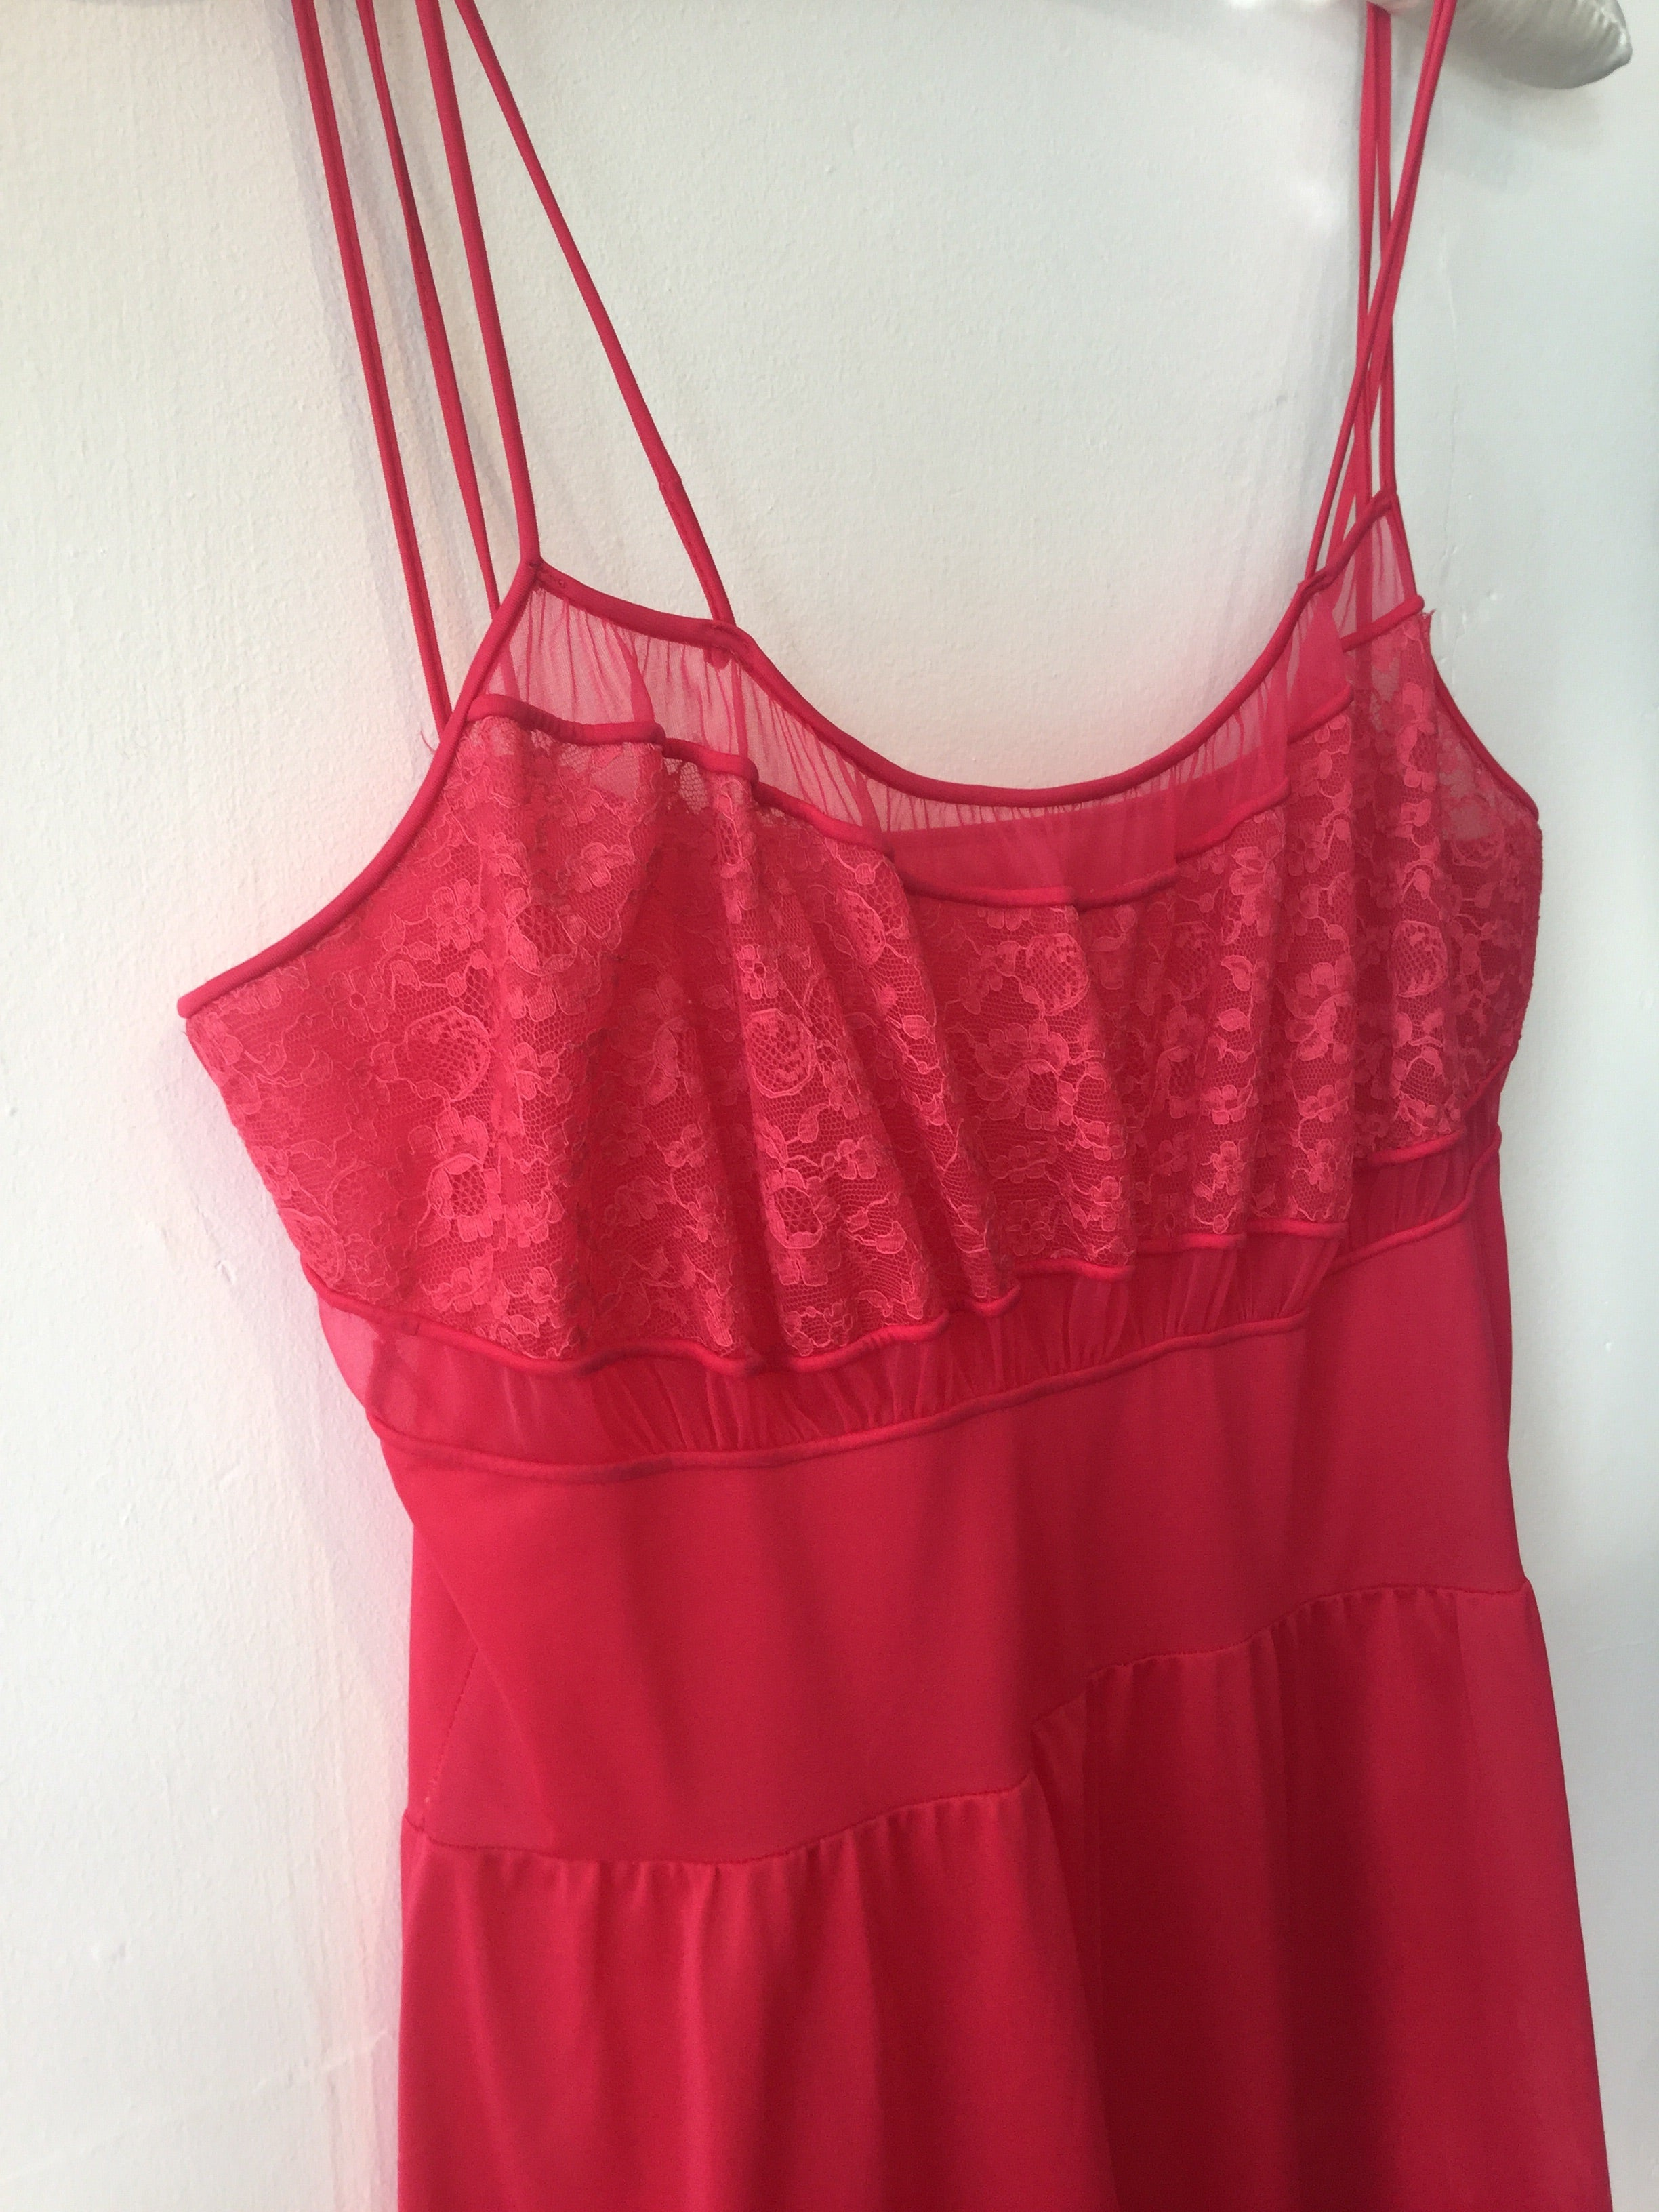 Hot Cherry Red Nightgown Size L/XL #148